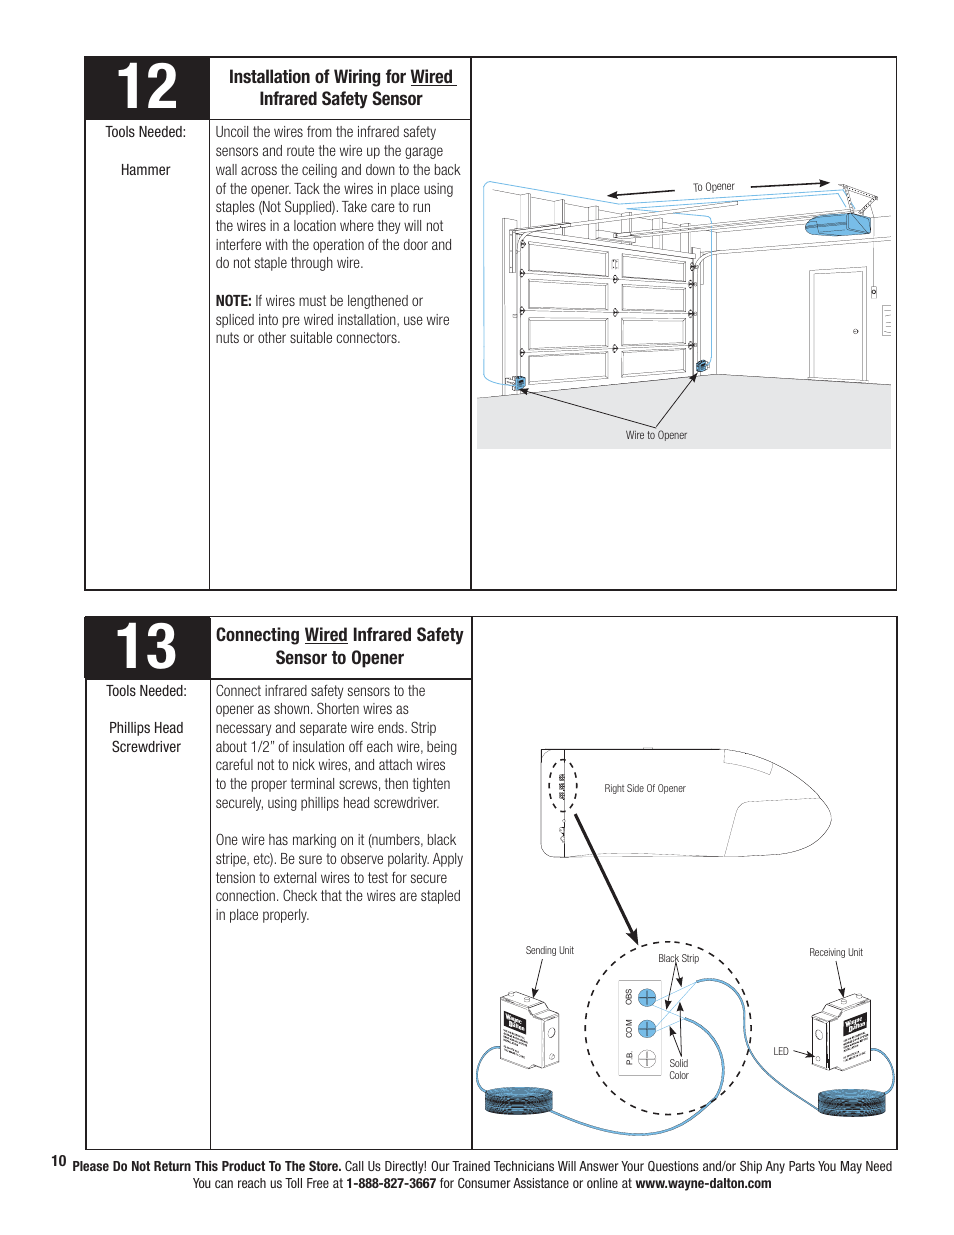 wayne dalton wiring diagram wayne-dalton prodrive 3222c-z user manual | page 16 / 48 ... wayne pump wiring diagram #2